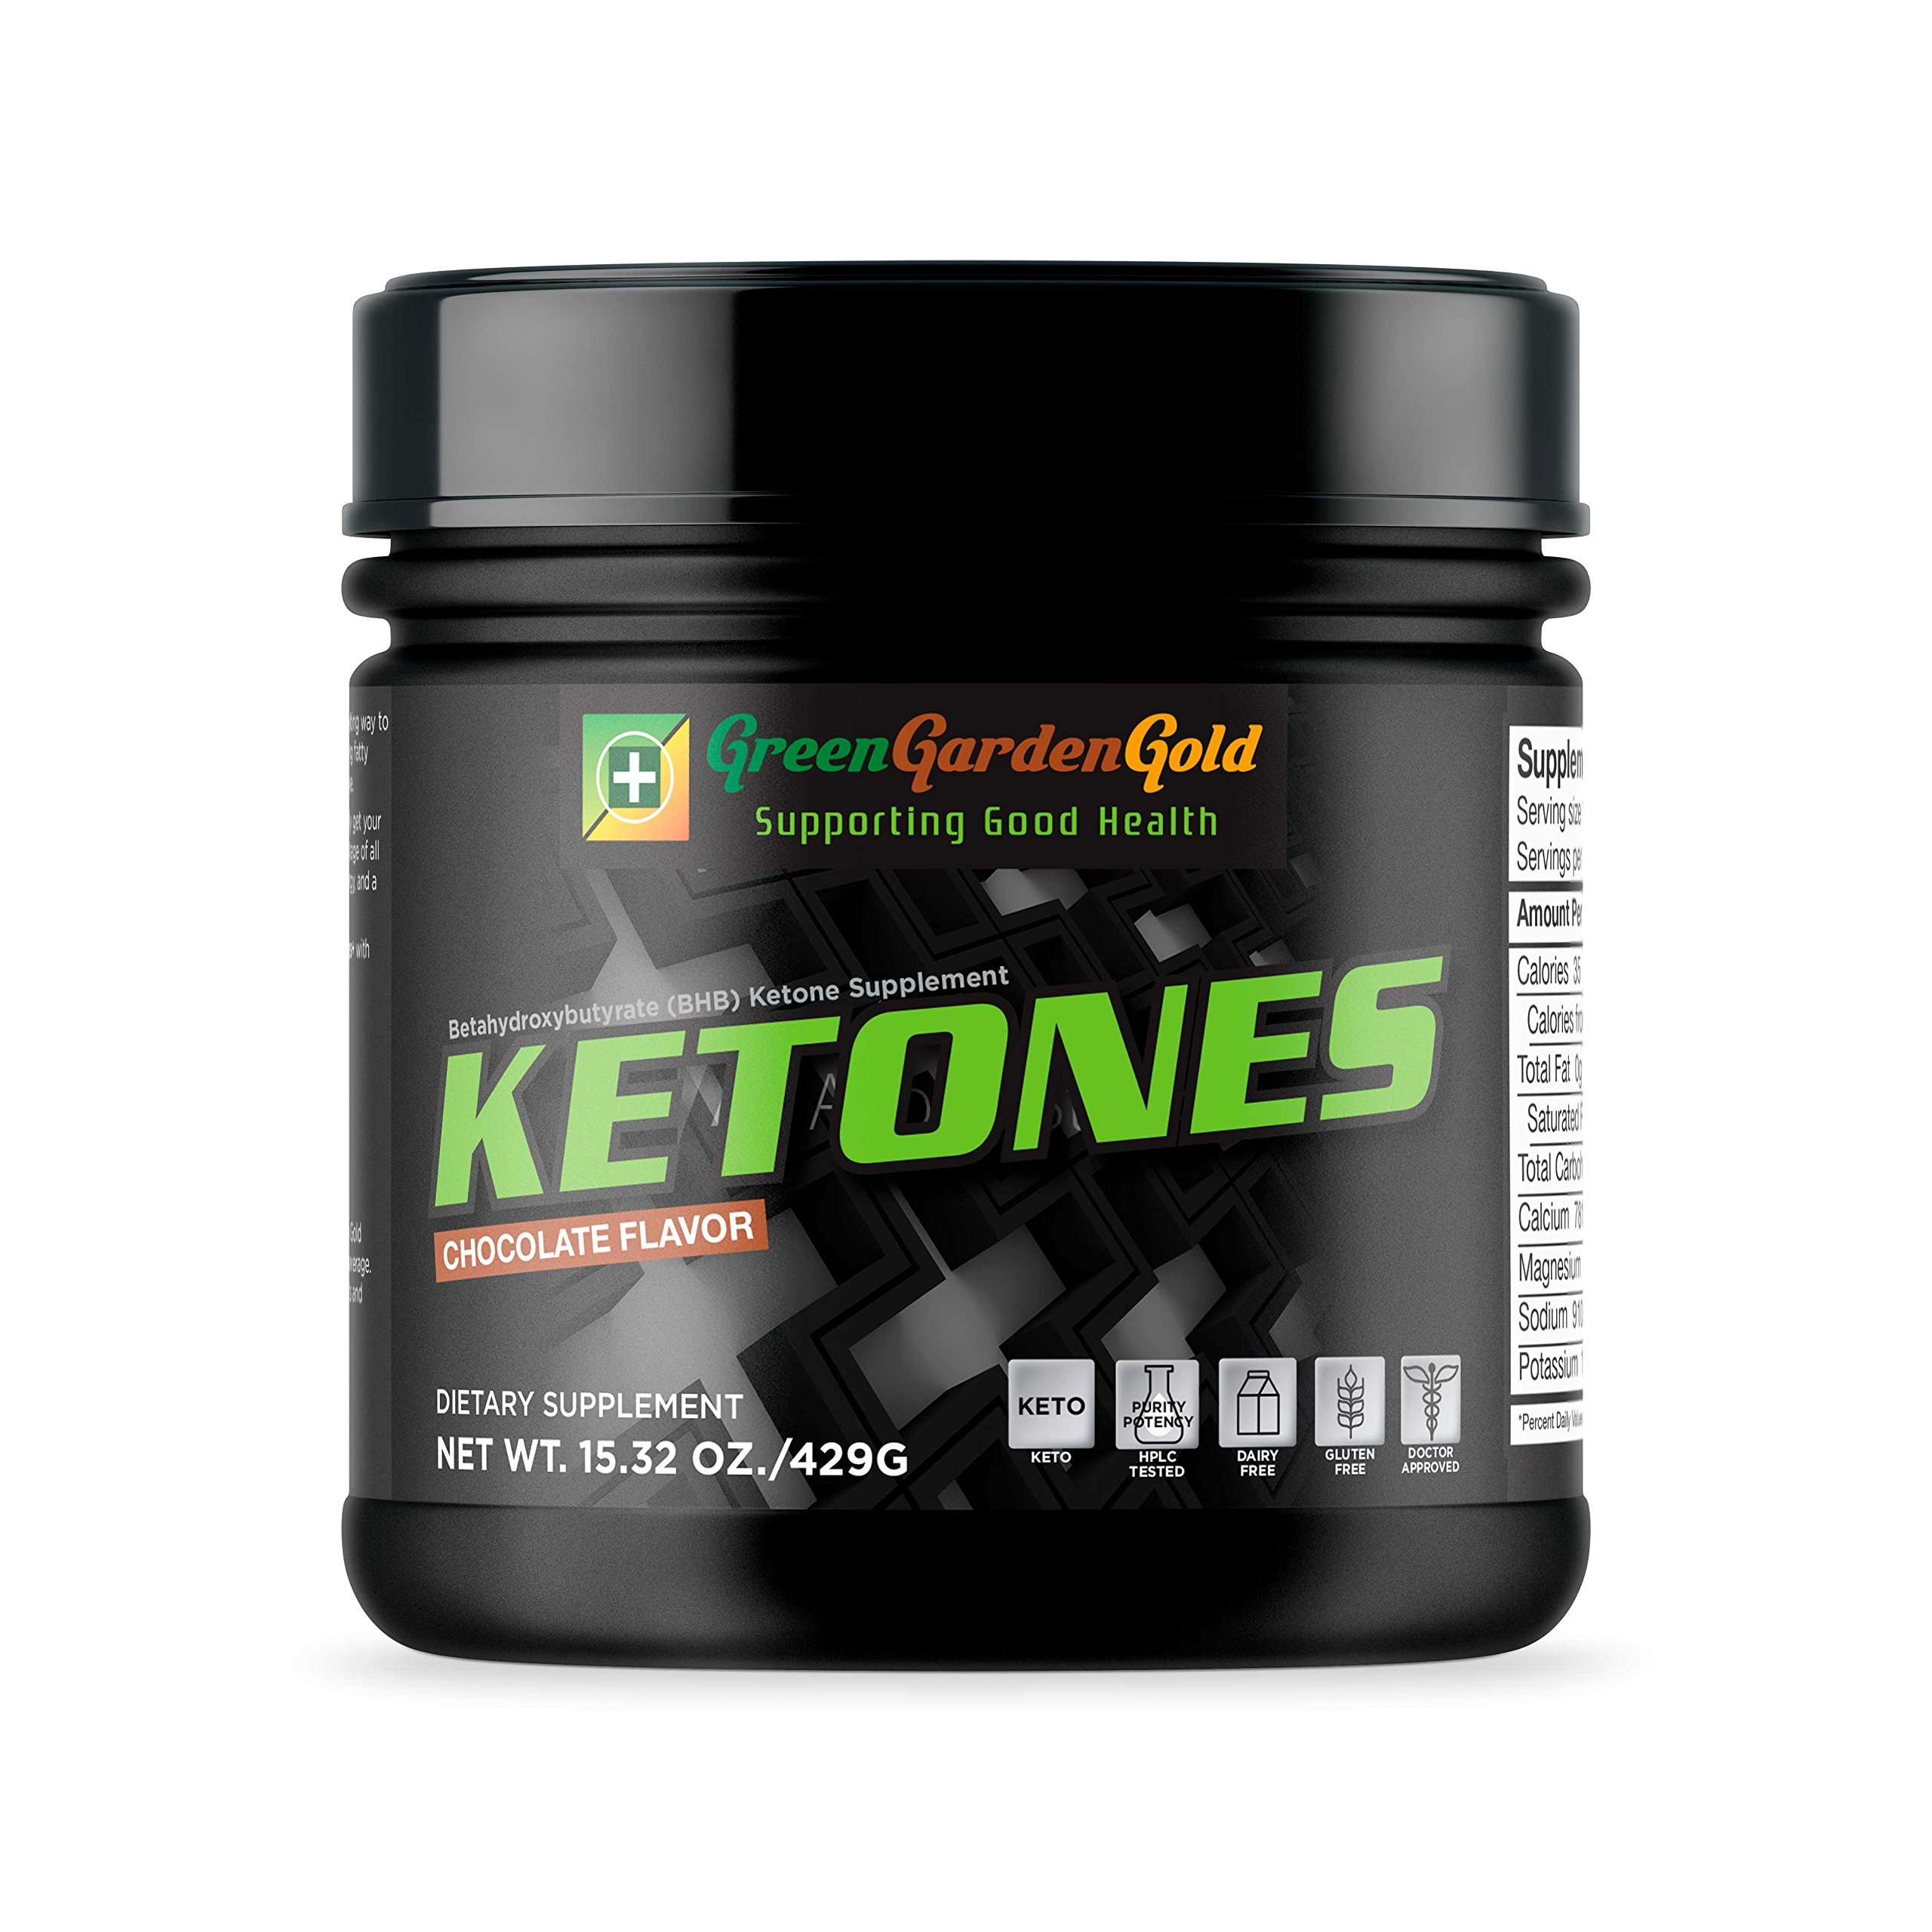 Exogenous Ketogenic Supplement by Green Garden Gold for Weight Loss, Getting Into Ketosis Quickly, and Energy Enhancement (15 OZ) Gluten-Free, Dairy-Free, Vegan Ketogenic Salt (Chocolate)